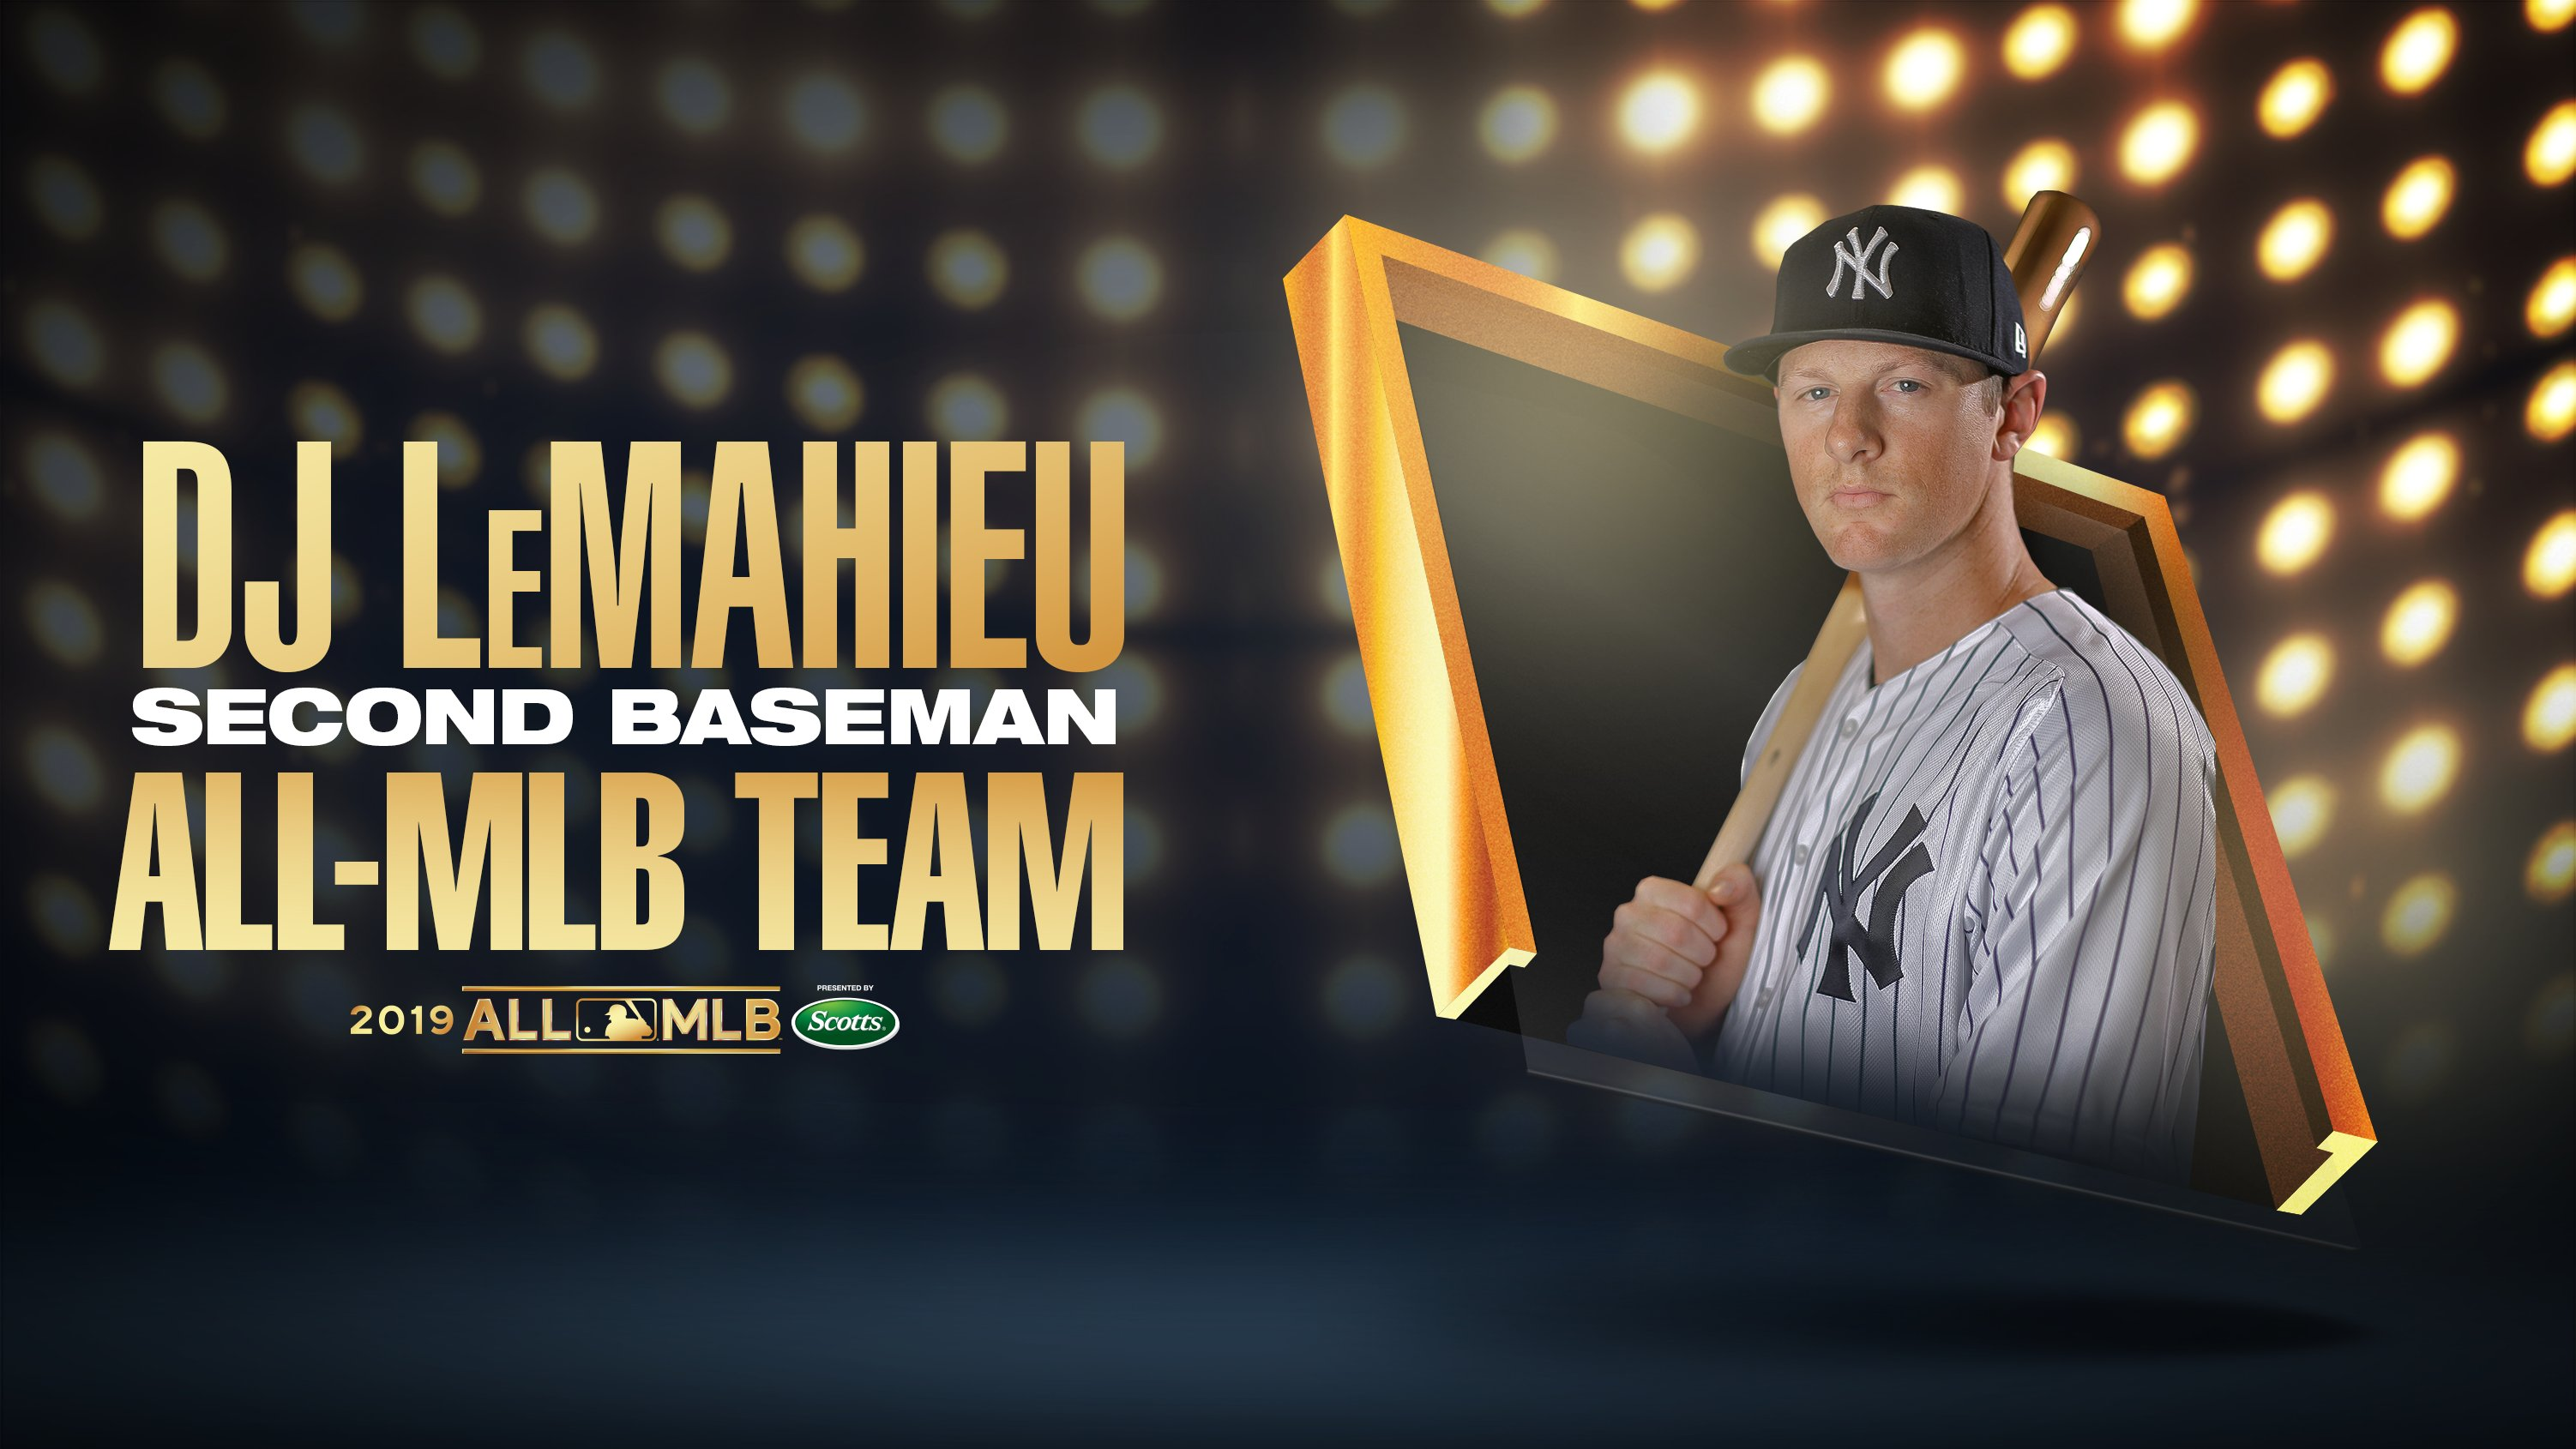 DJ LeMahieu and Aroldis Chapman named to All-MLB Team